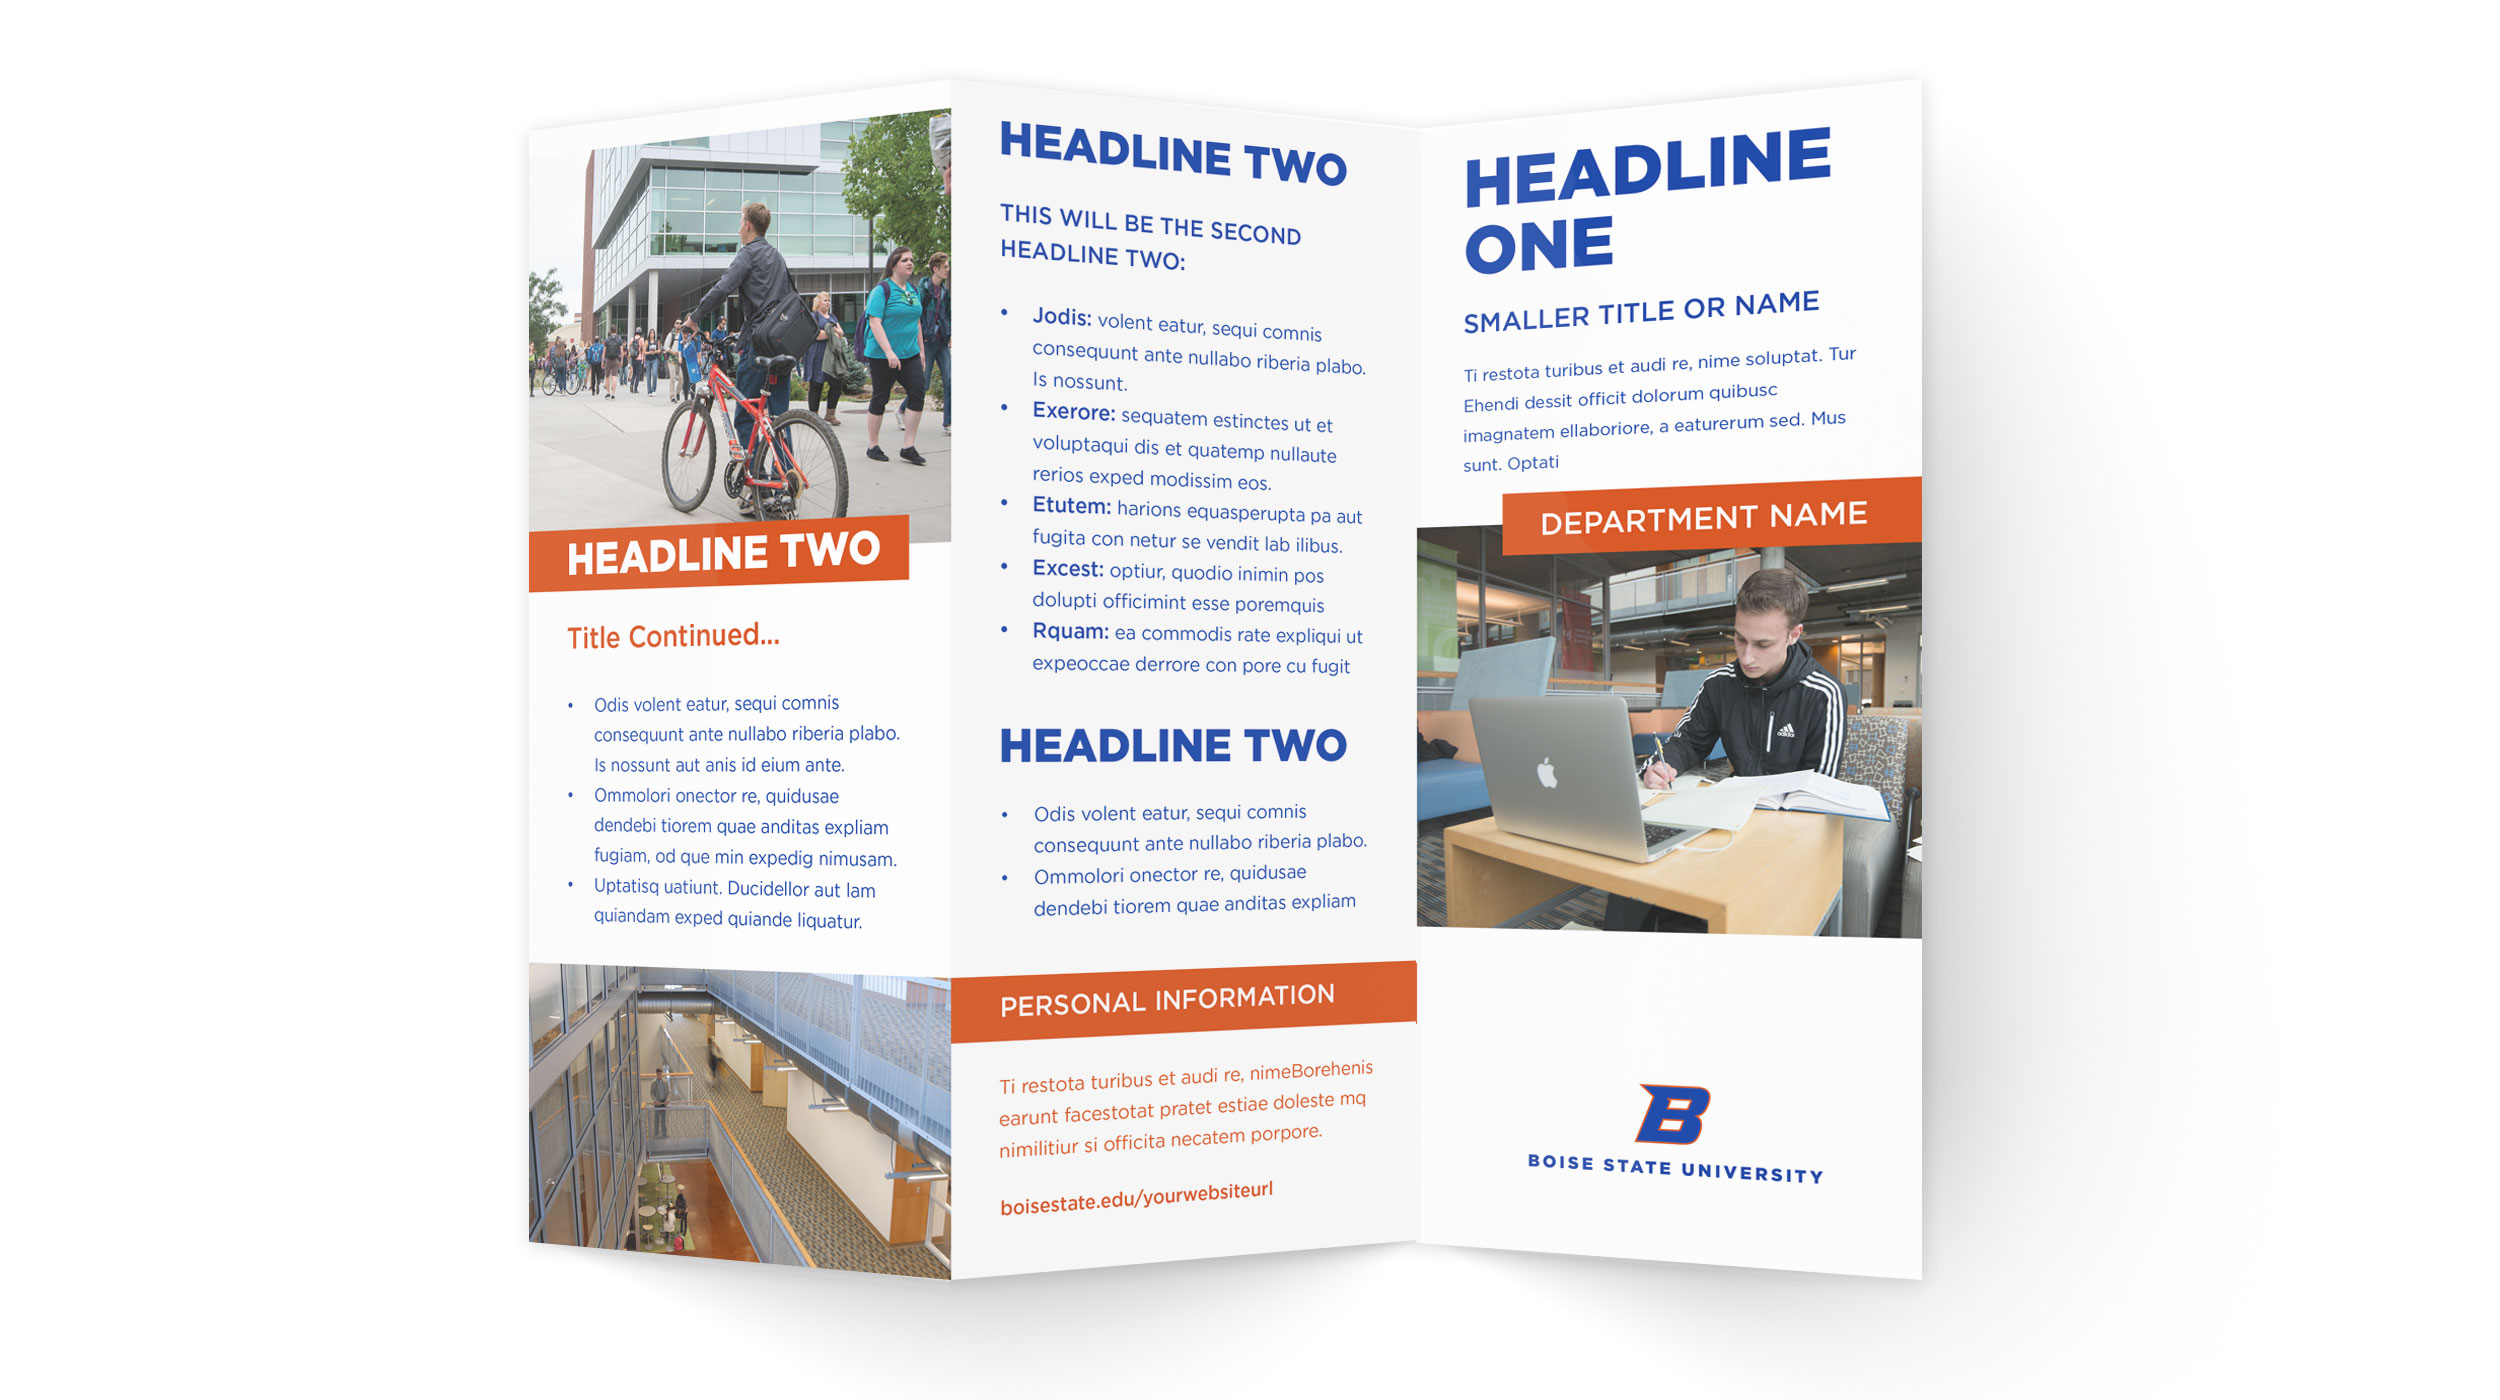 Examples of Boise State trifold brochure designs